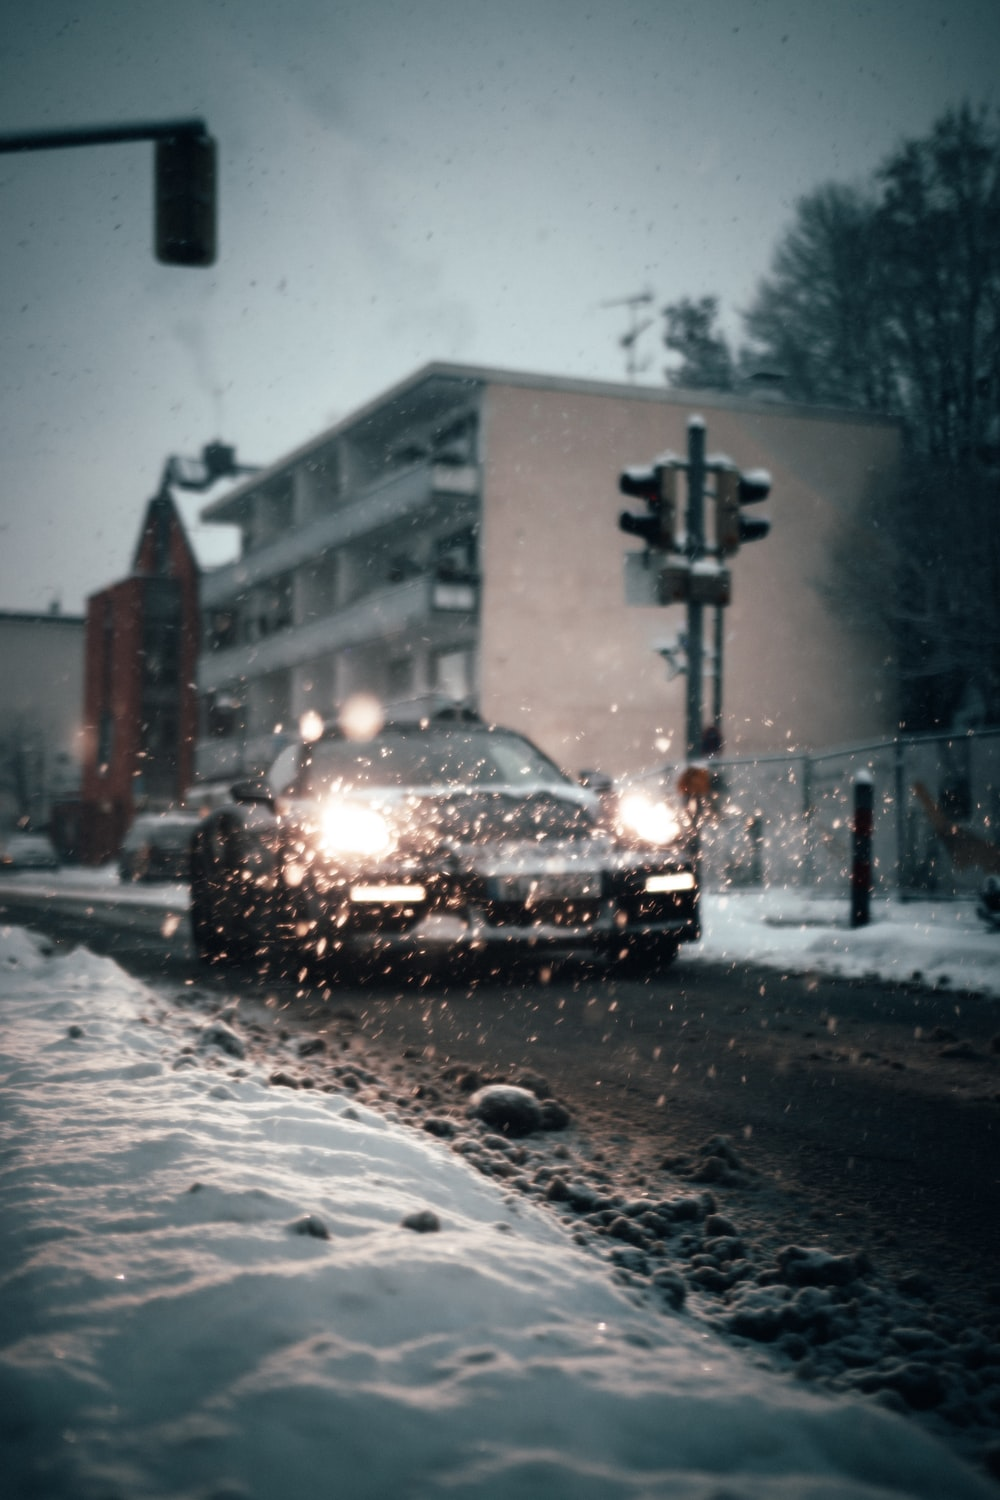 black car on road covered with snow during daytime